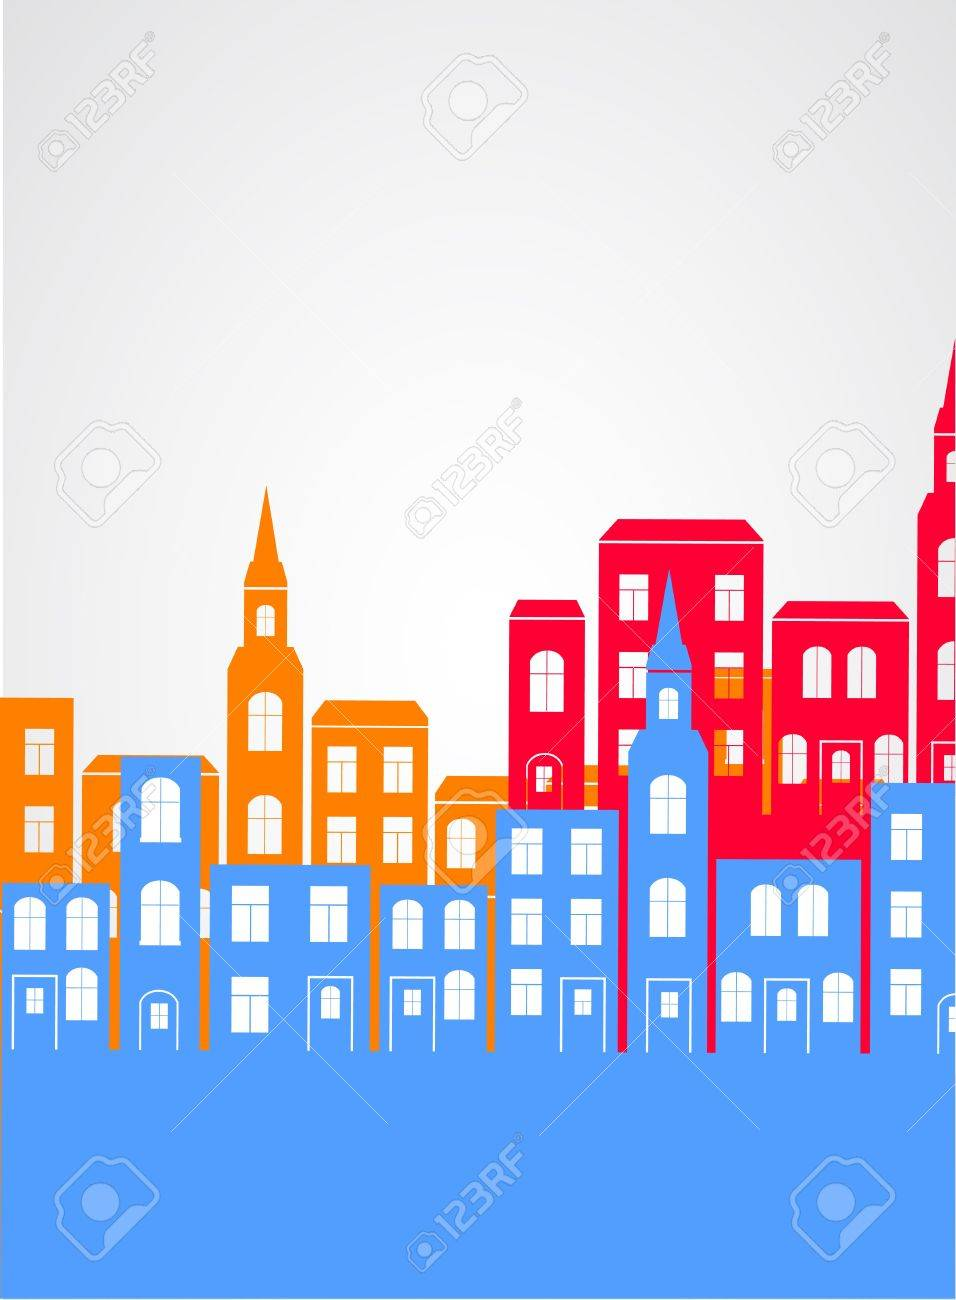 City silhouette background. Stock Vector - 21317374